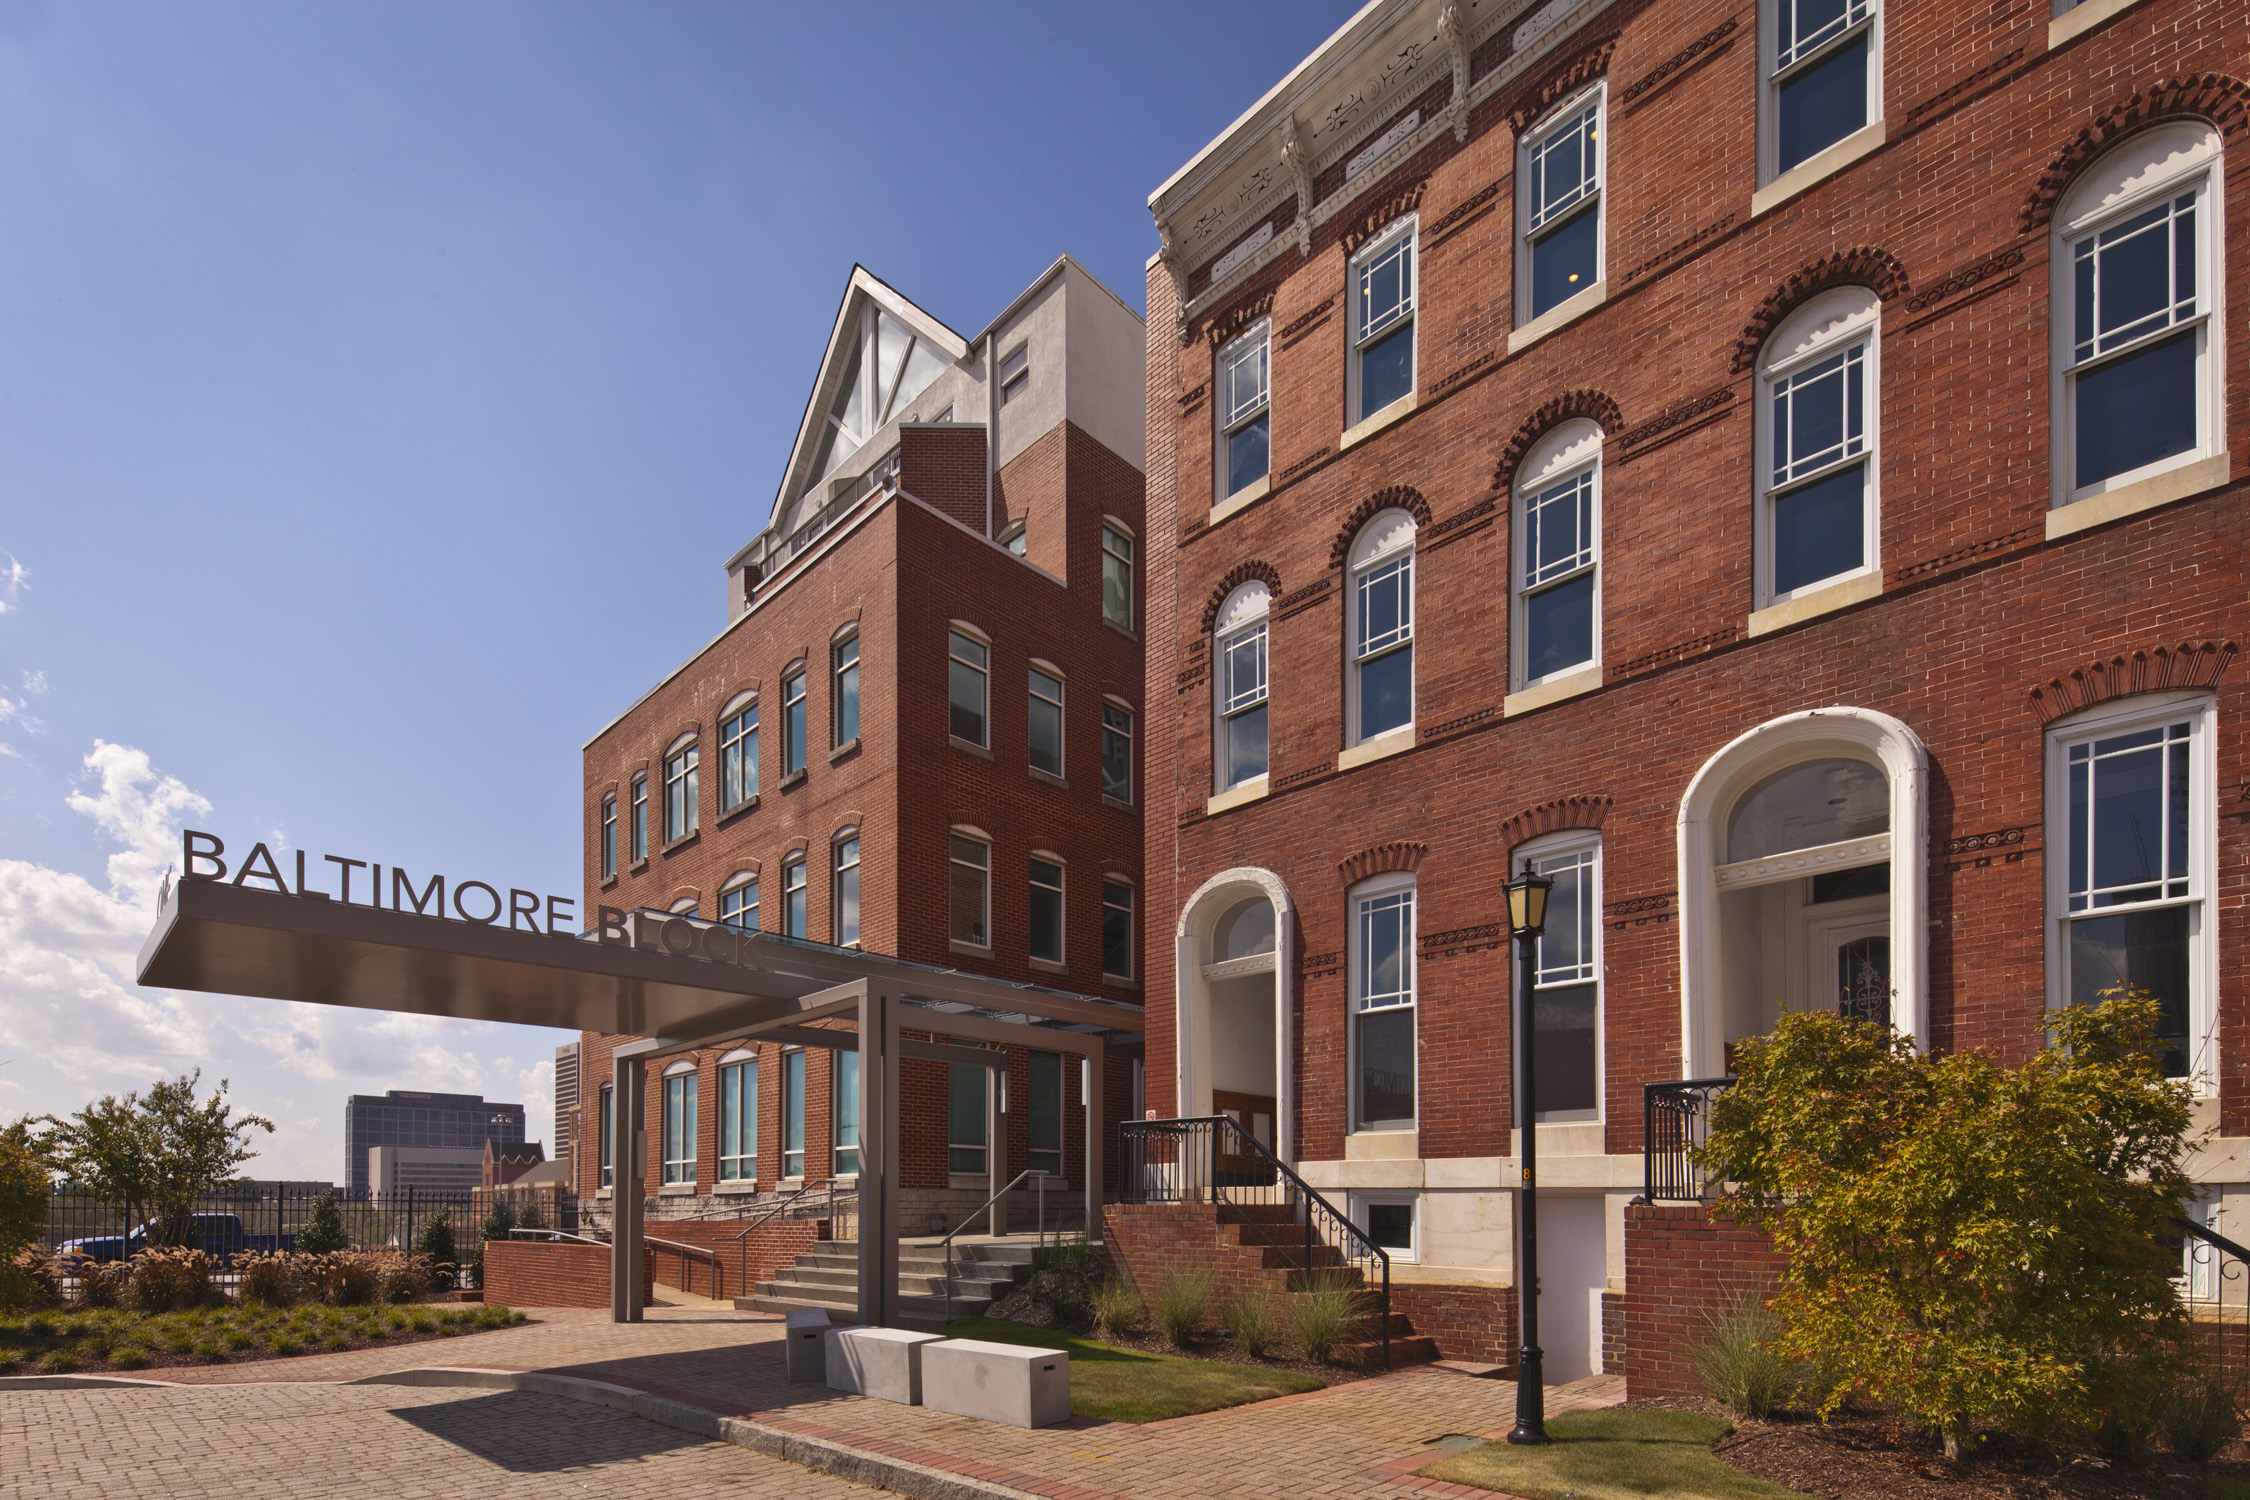 A brick building with modern metal entry, abutting the 1880s row houses.